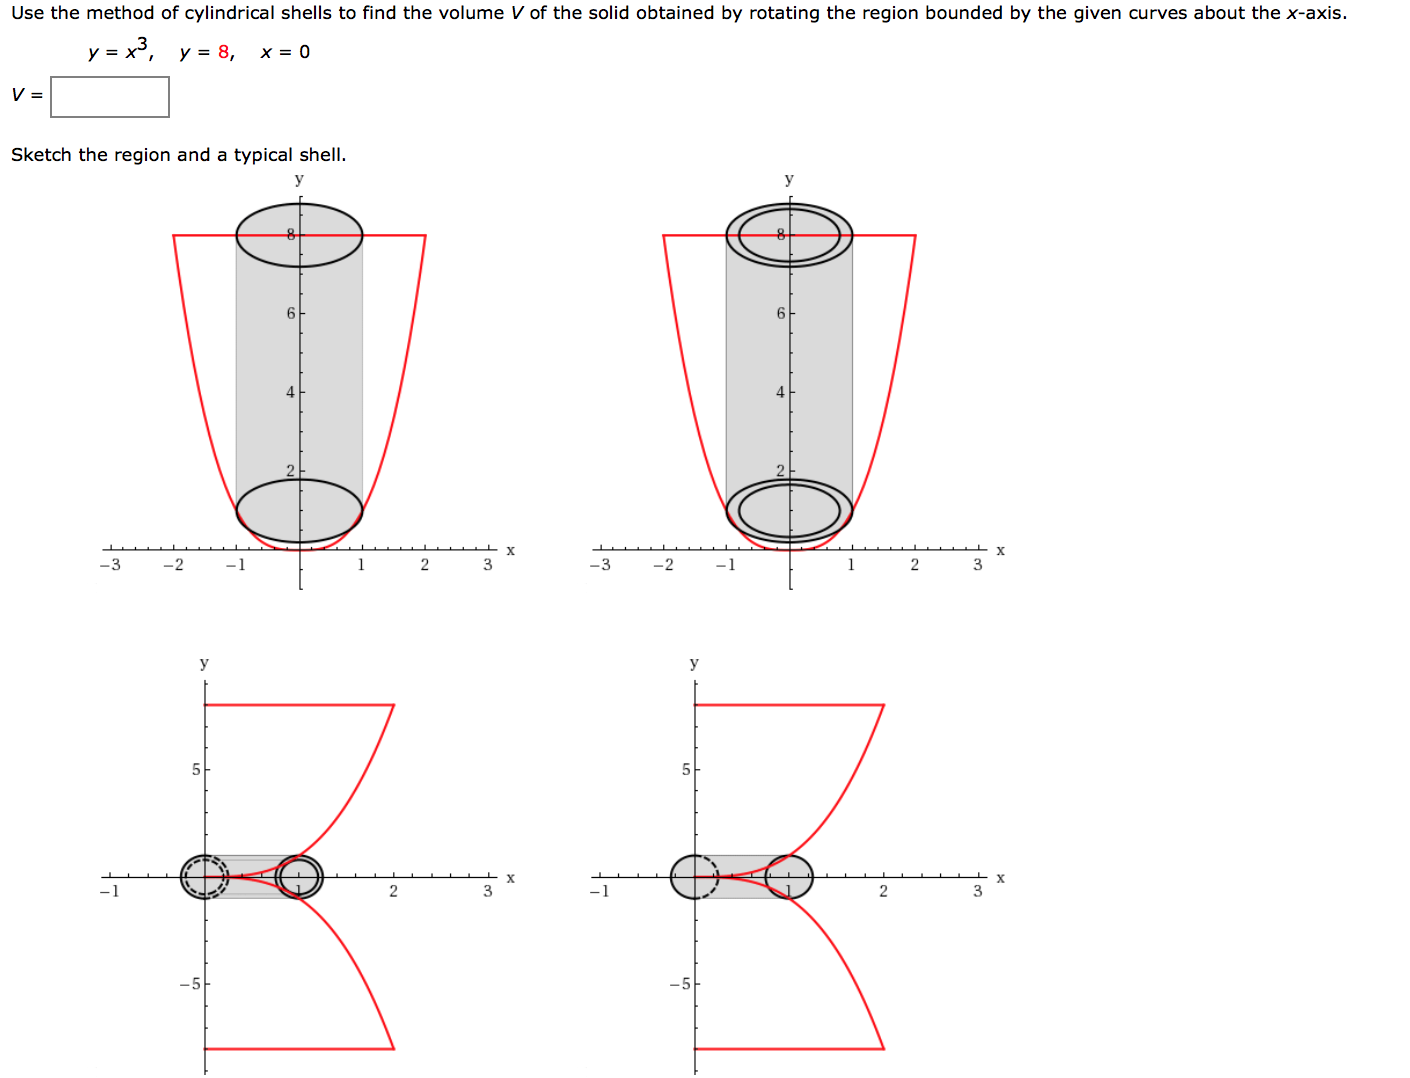 Let V Be The Volume Of The Solid Obtained By Rotating About The Yaxis The  Region Bounded And Y = Find V By Cylindrical Shells